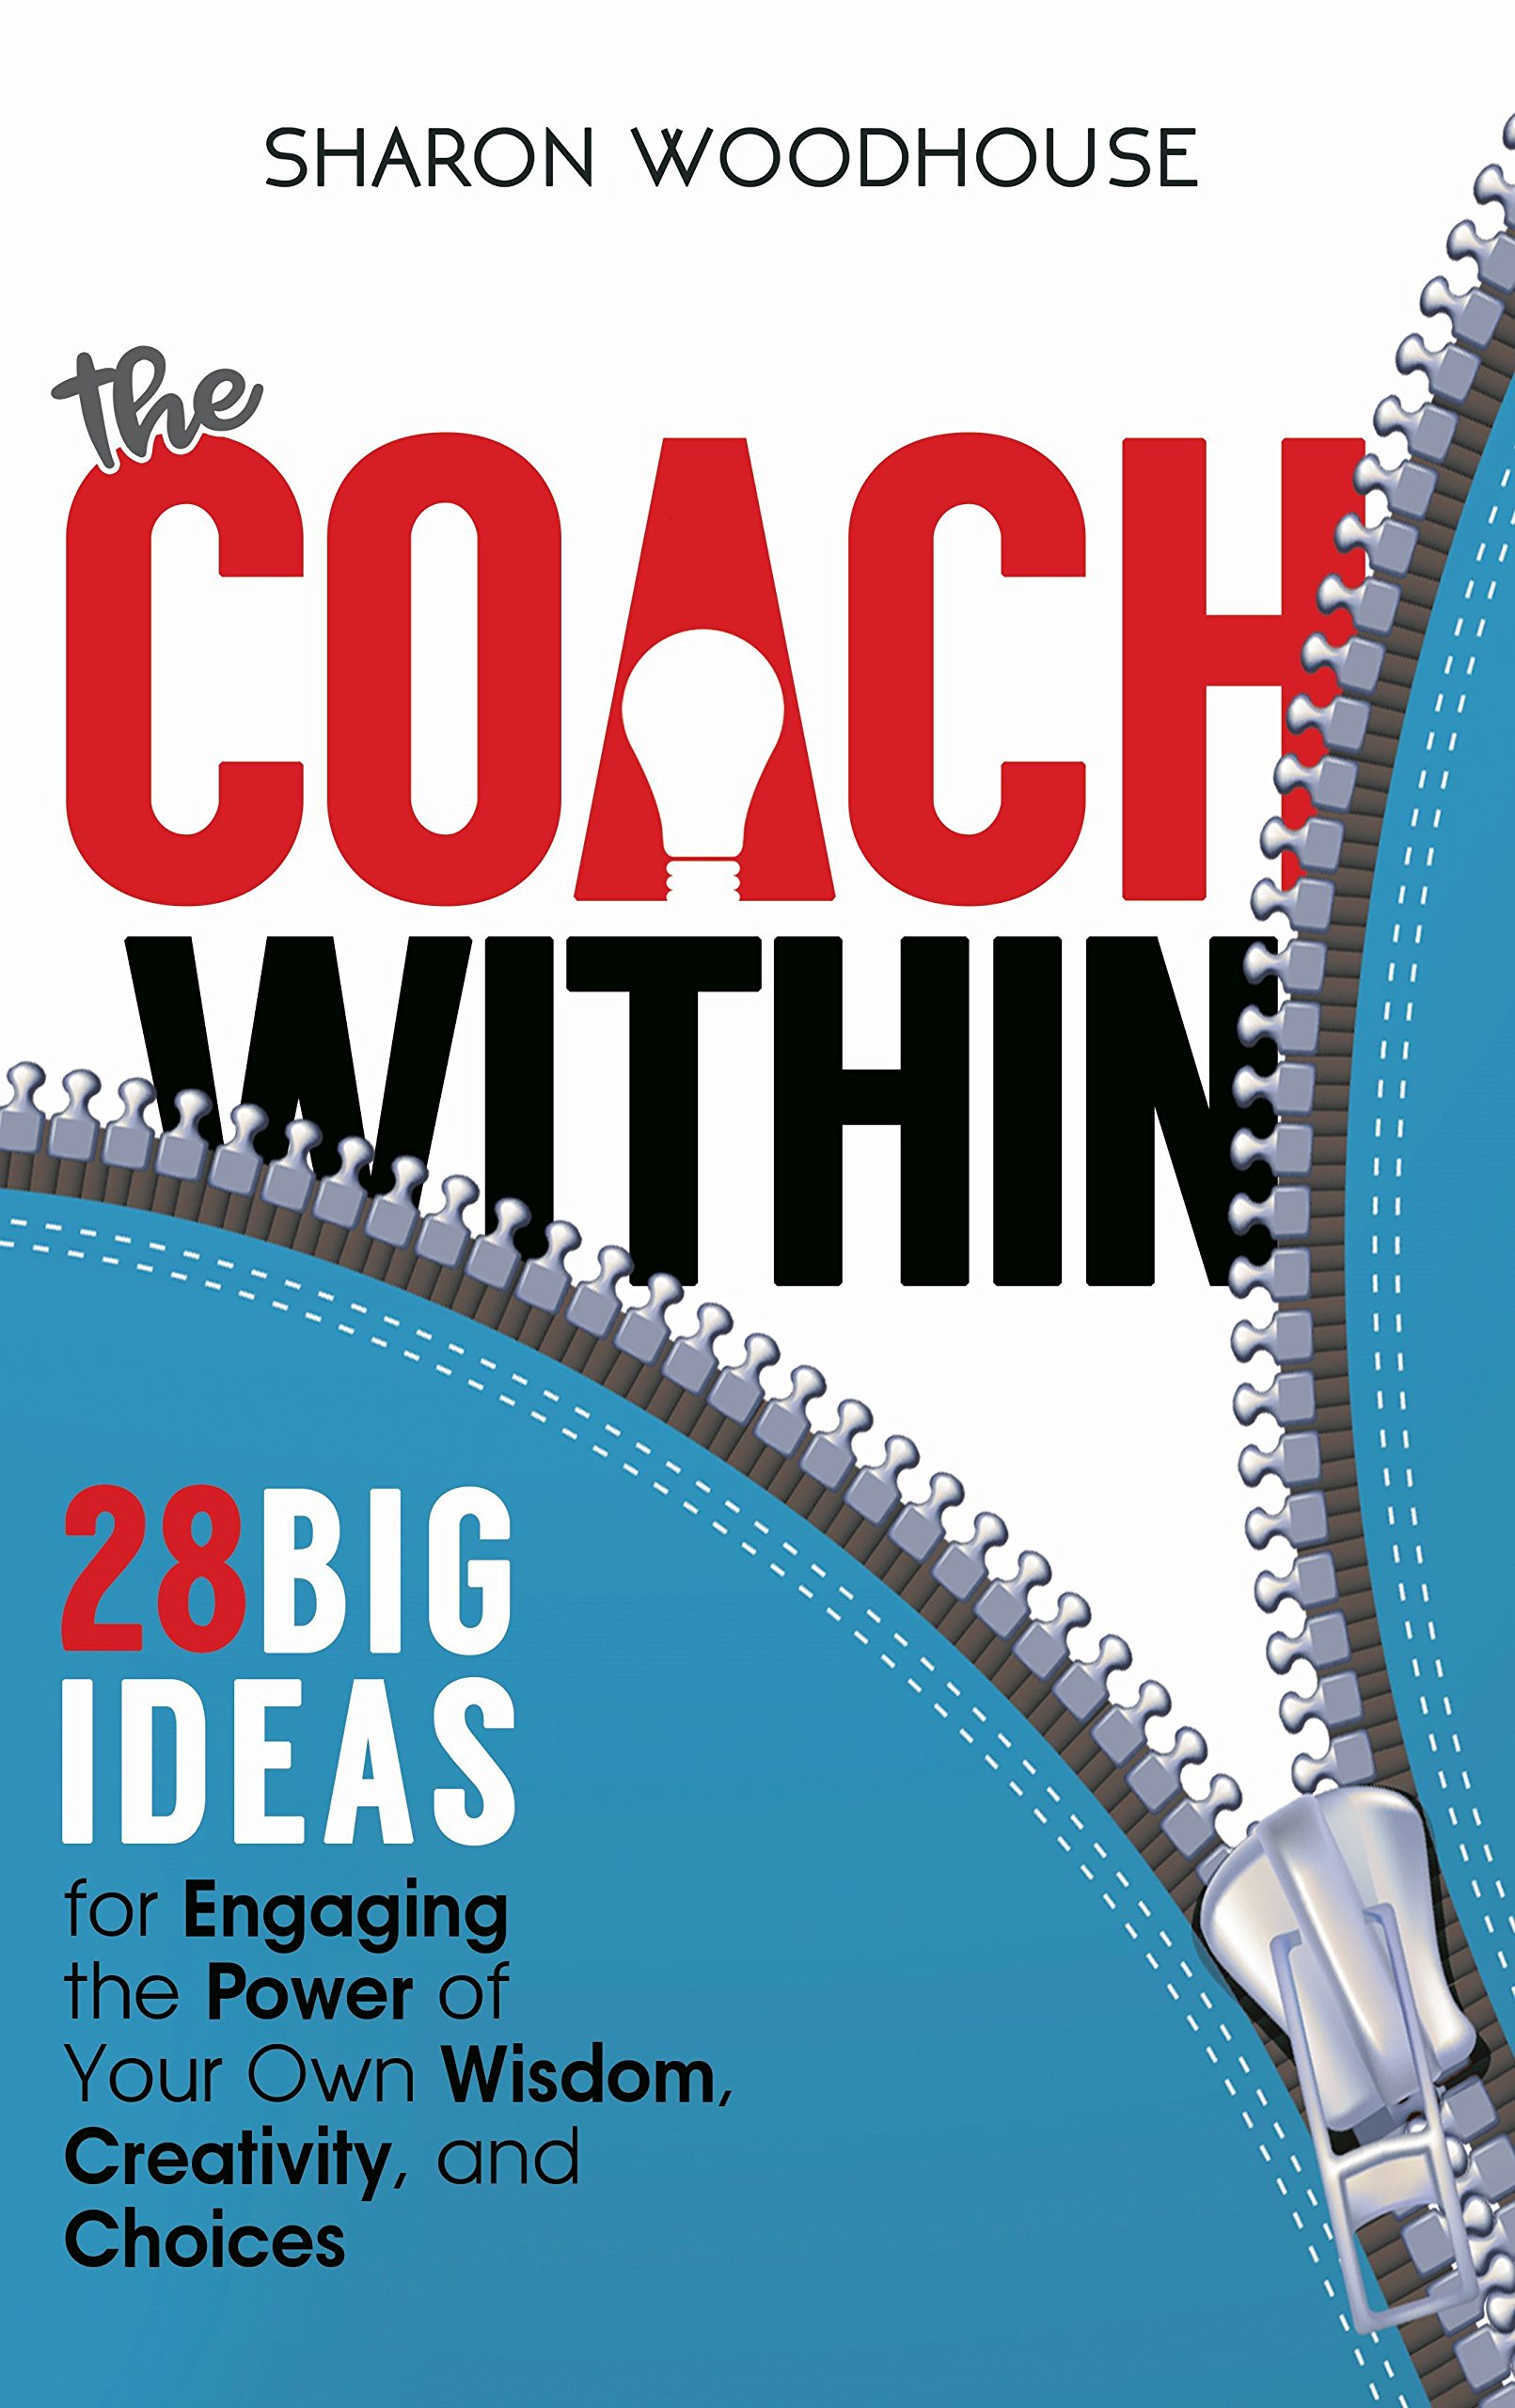 The Coach Within: 28 Big Ideas for Engaging the Power of Your Own Wisdom, Creativity, and Choices